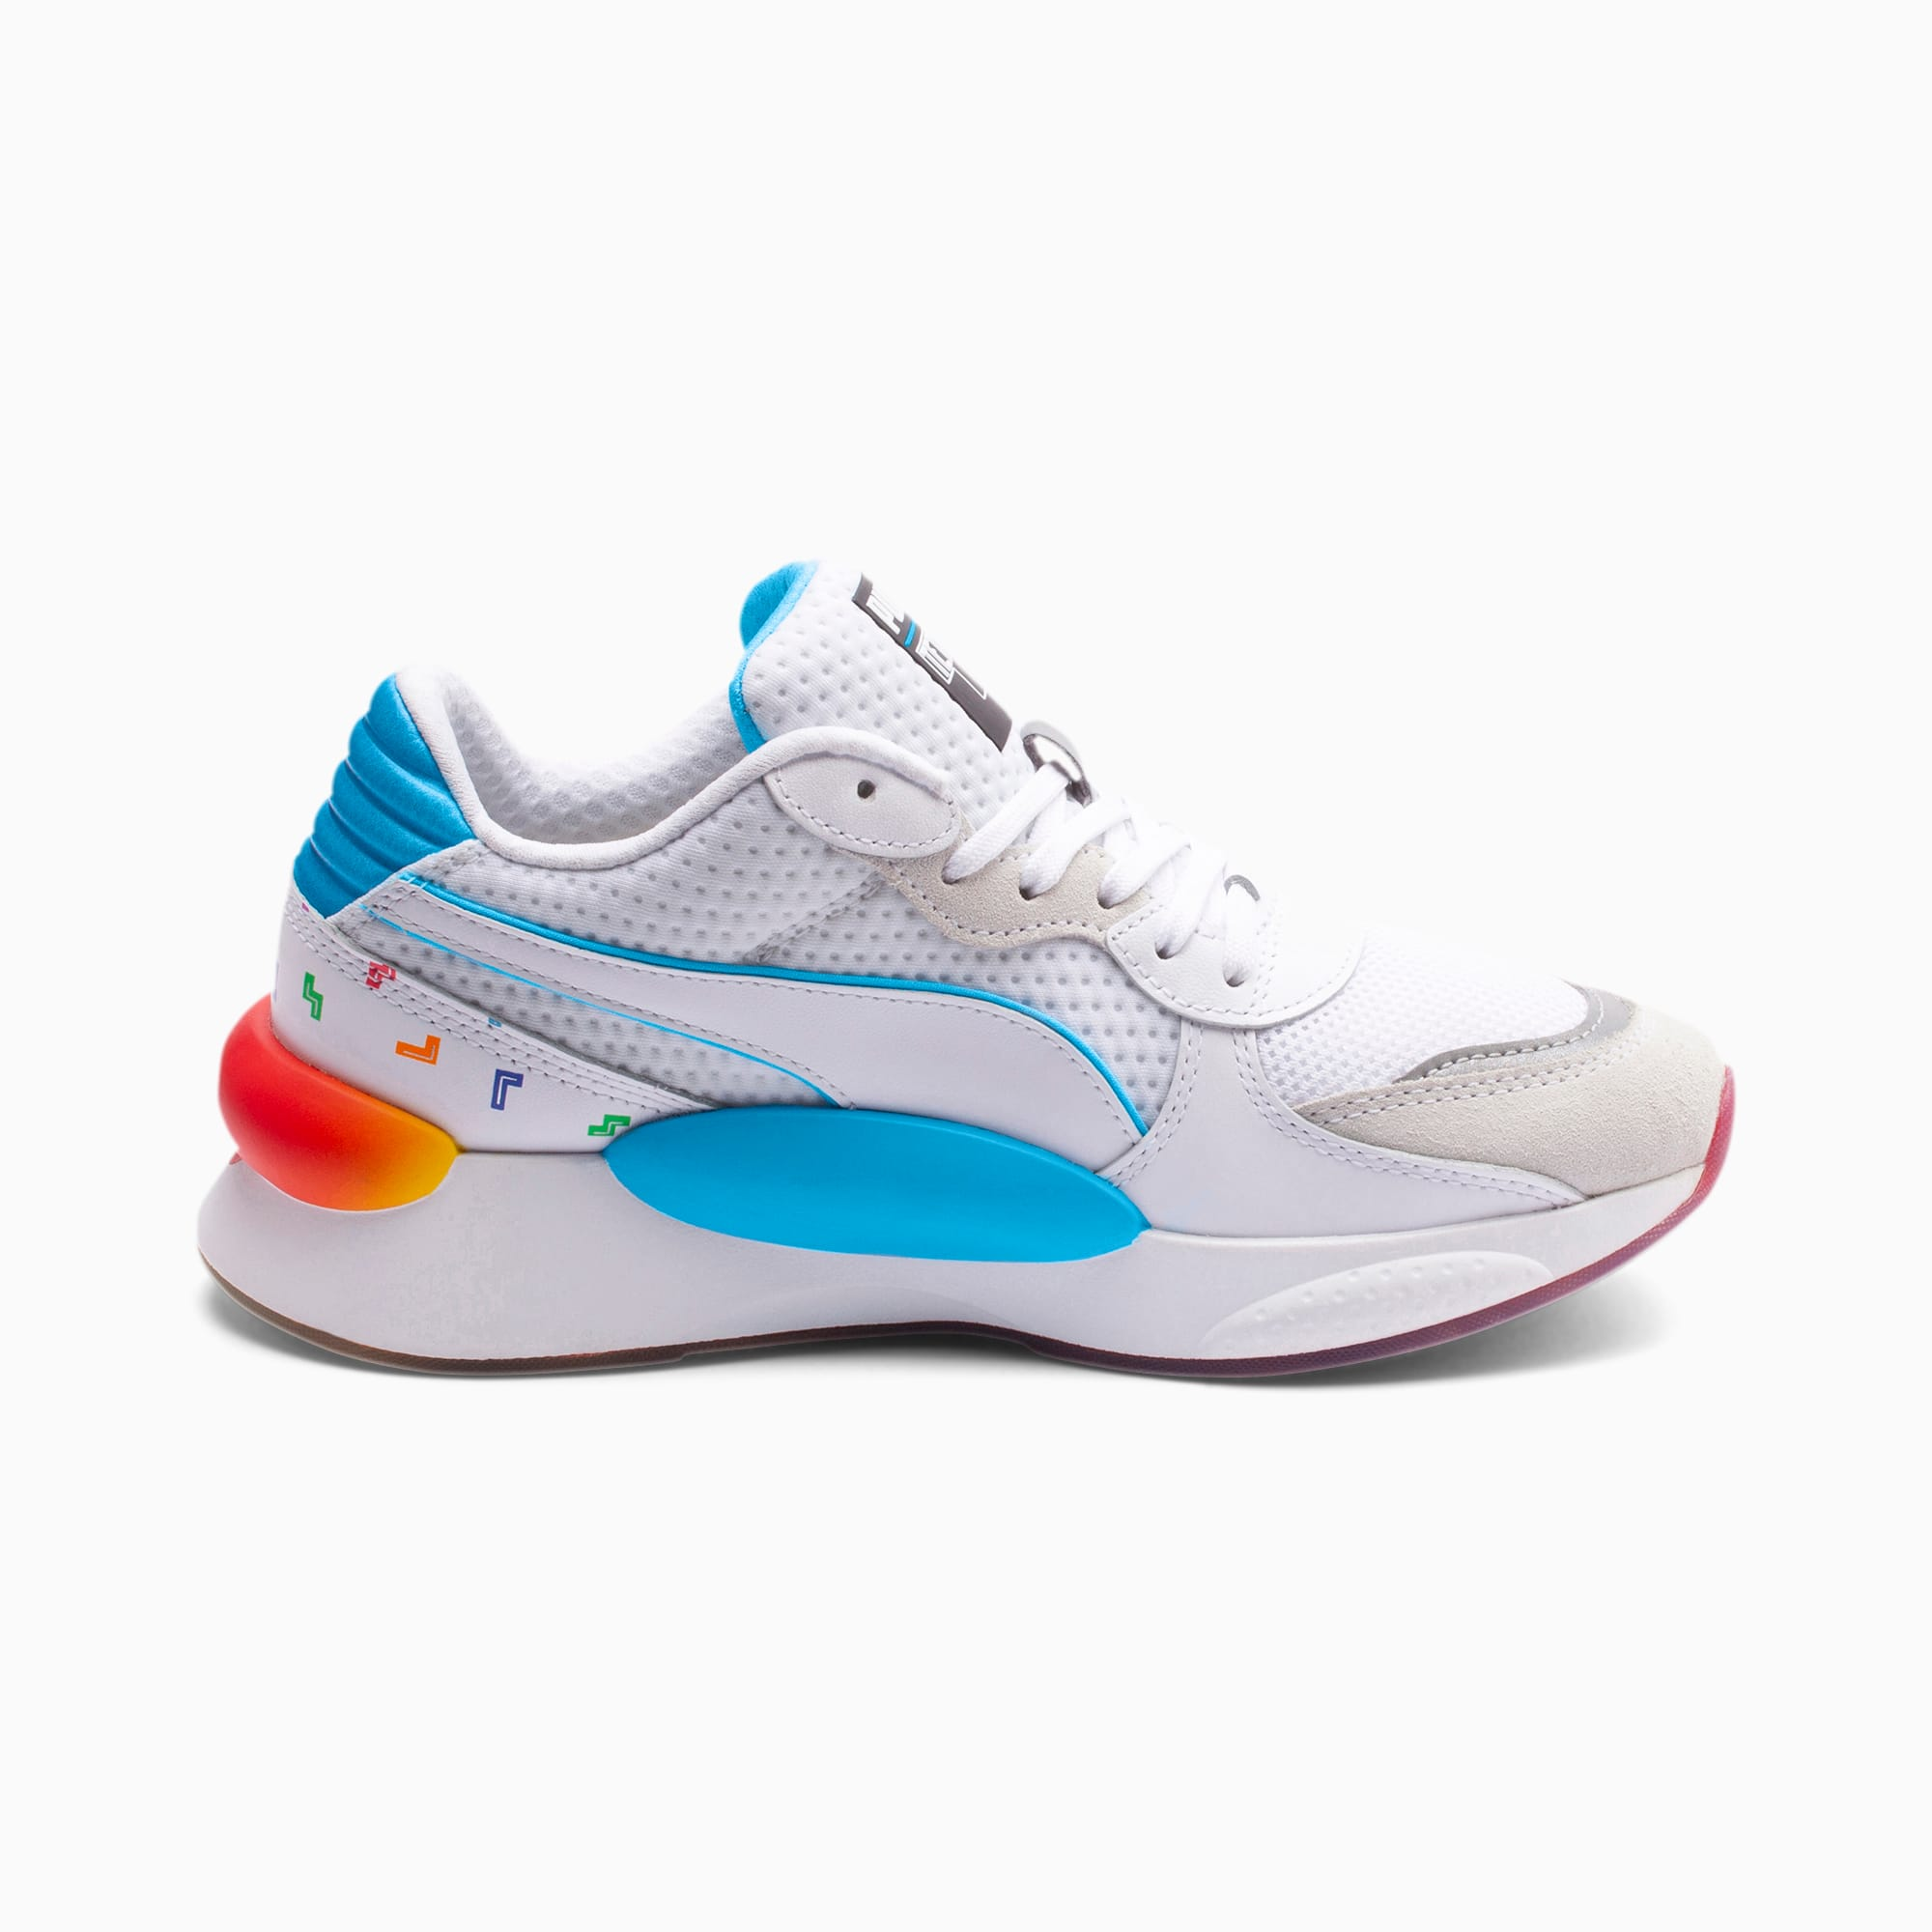 PUMA x SONIC RS 9.8 Sneakers JR